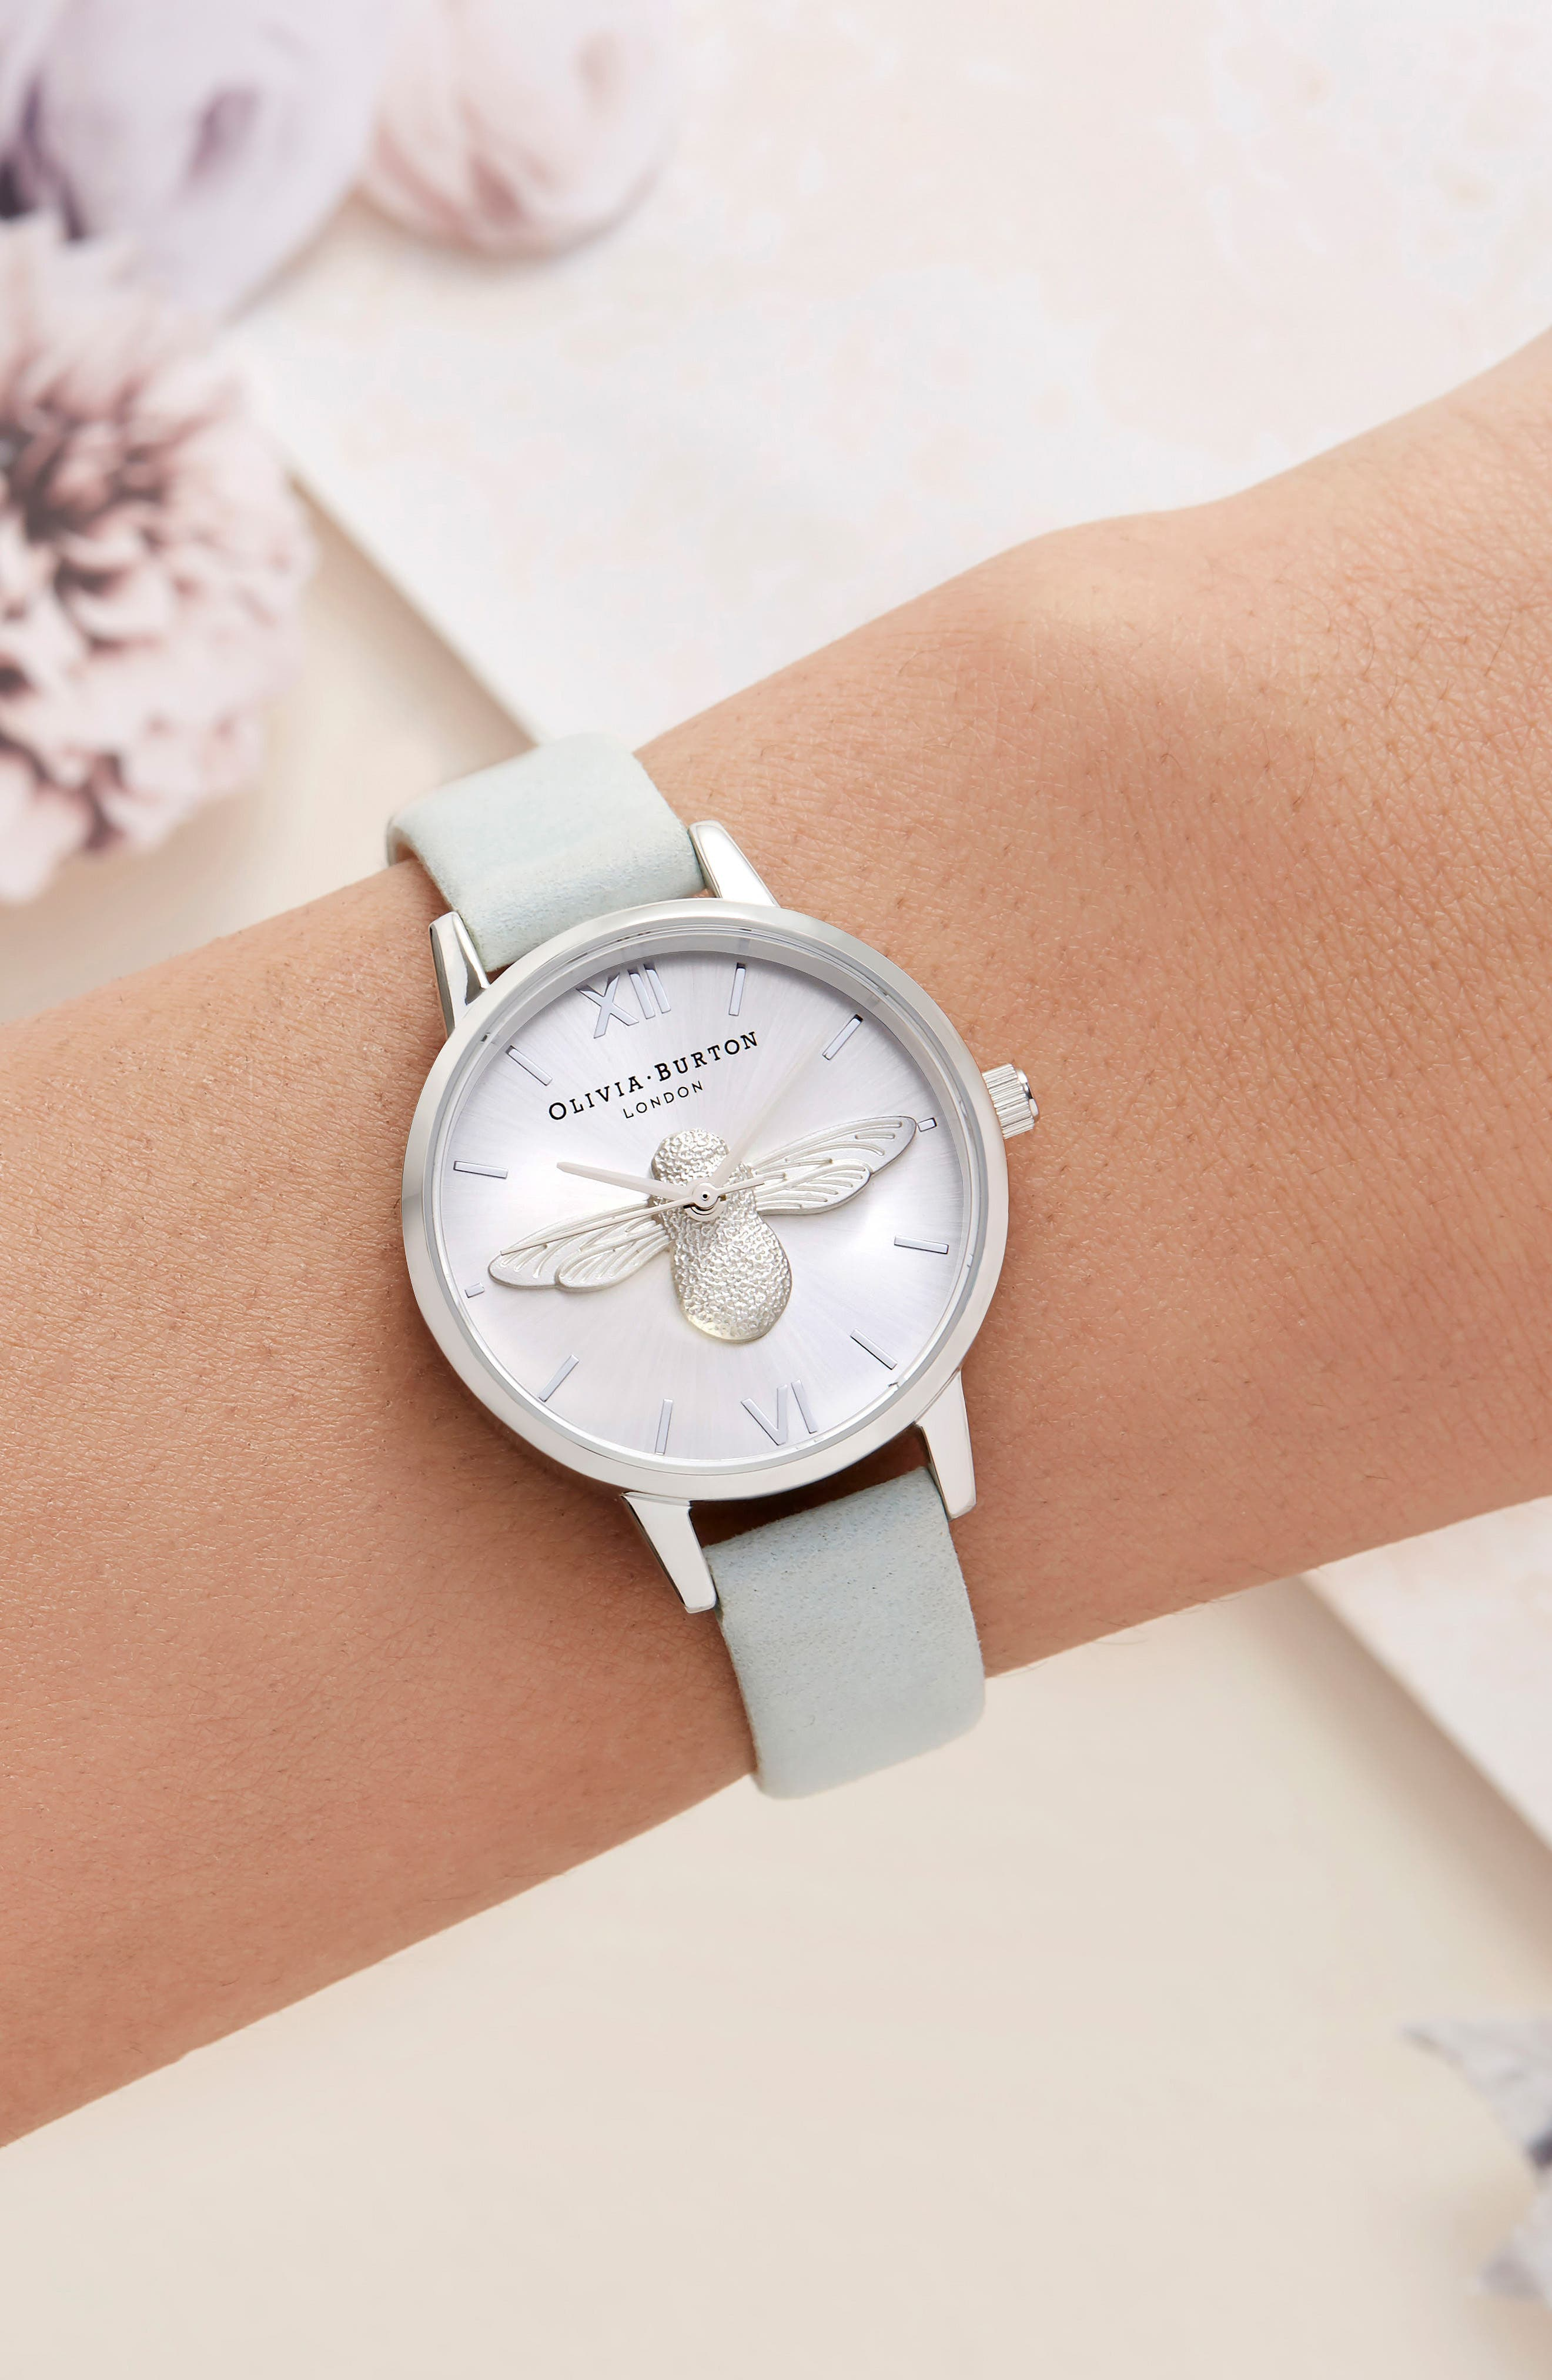 3D Bee Leather Strap Watch, 30mm,                             Alternate thumbnail 2, color,                             SAGE/ BEE/ SILVER